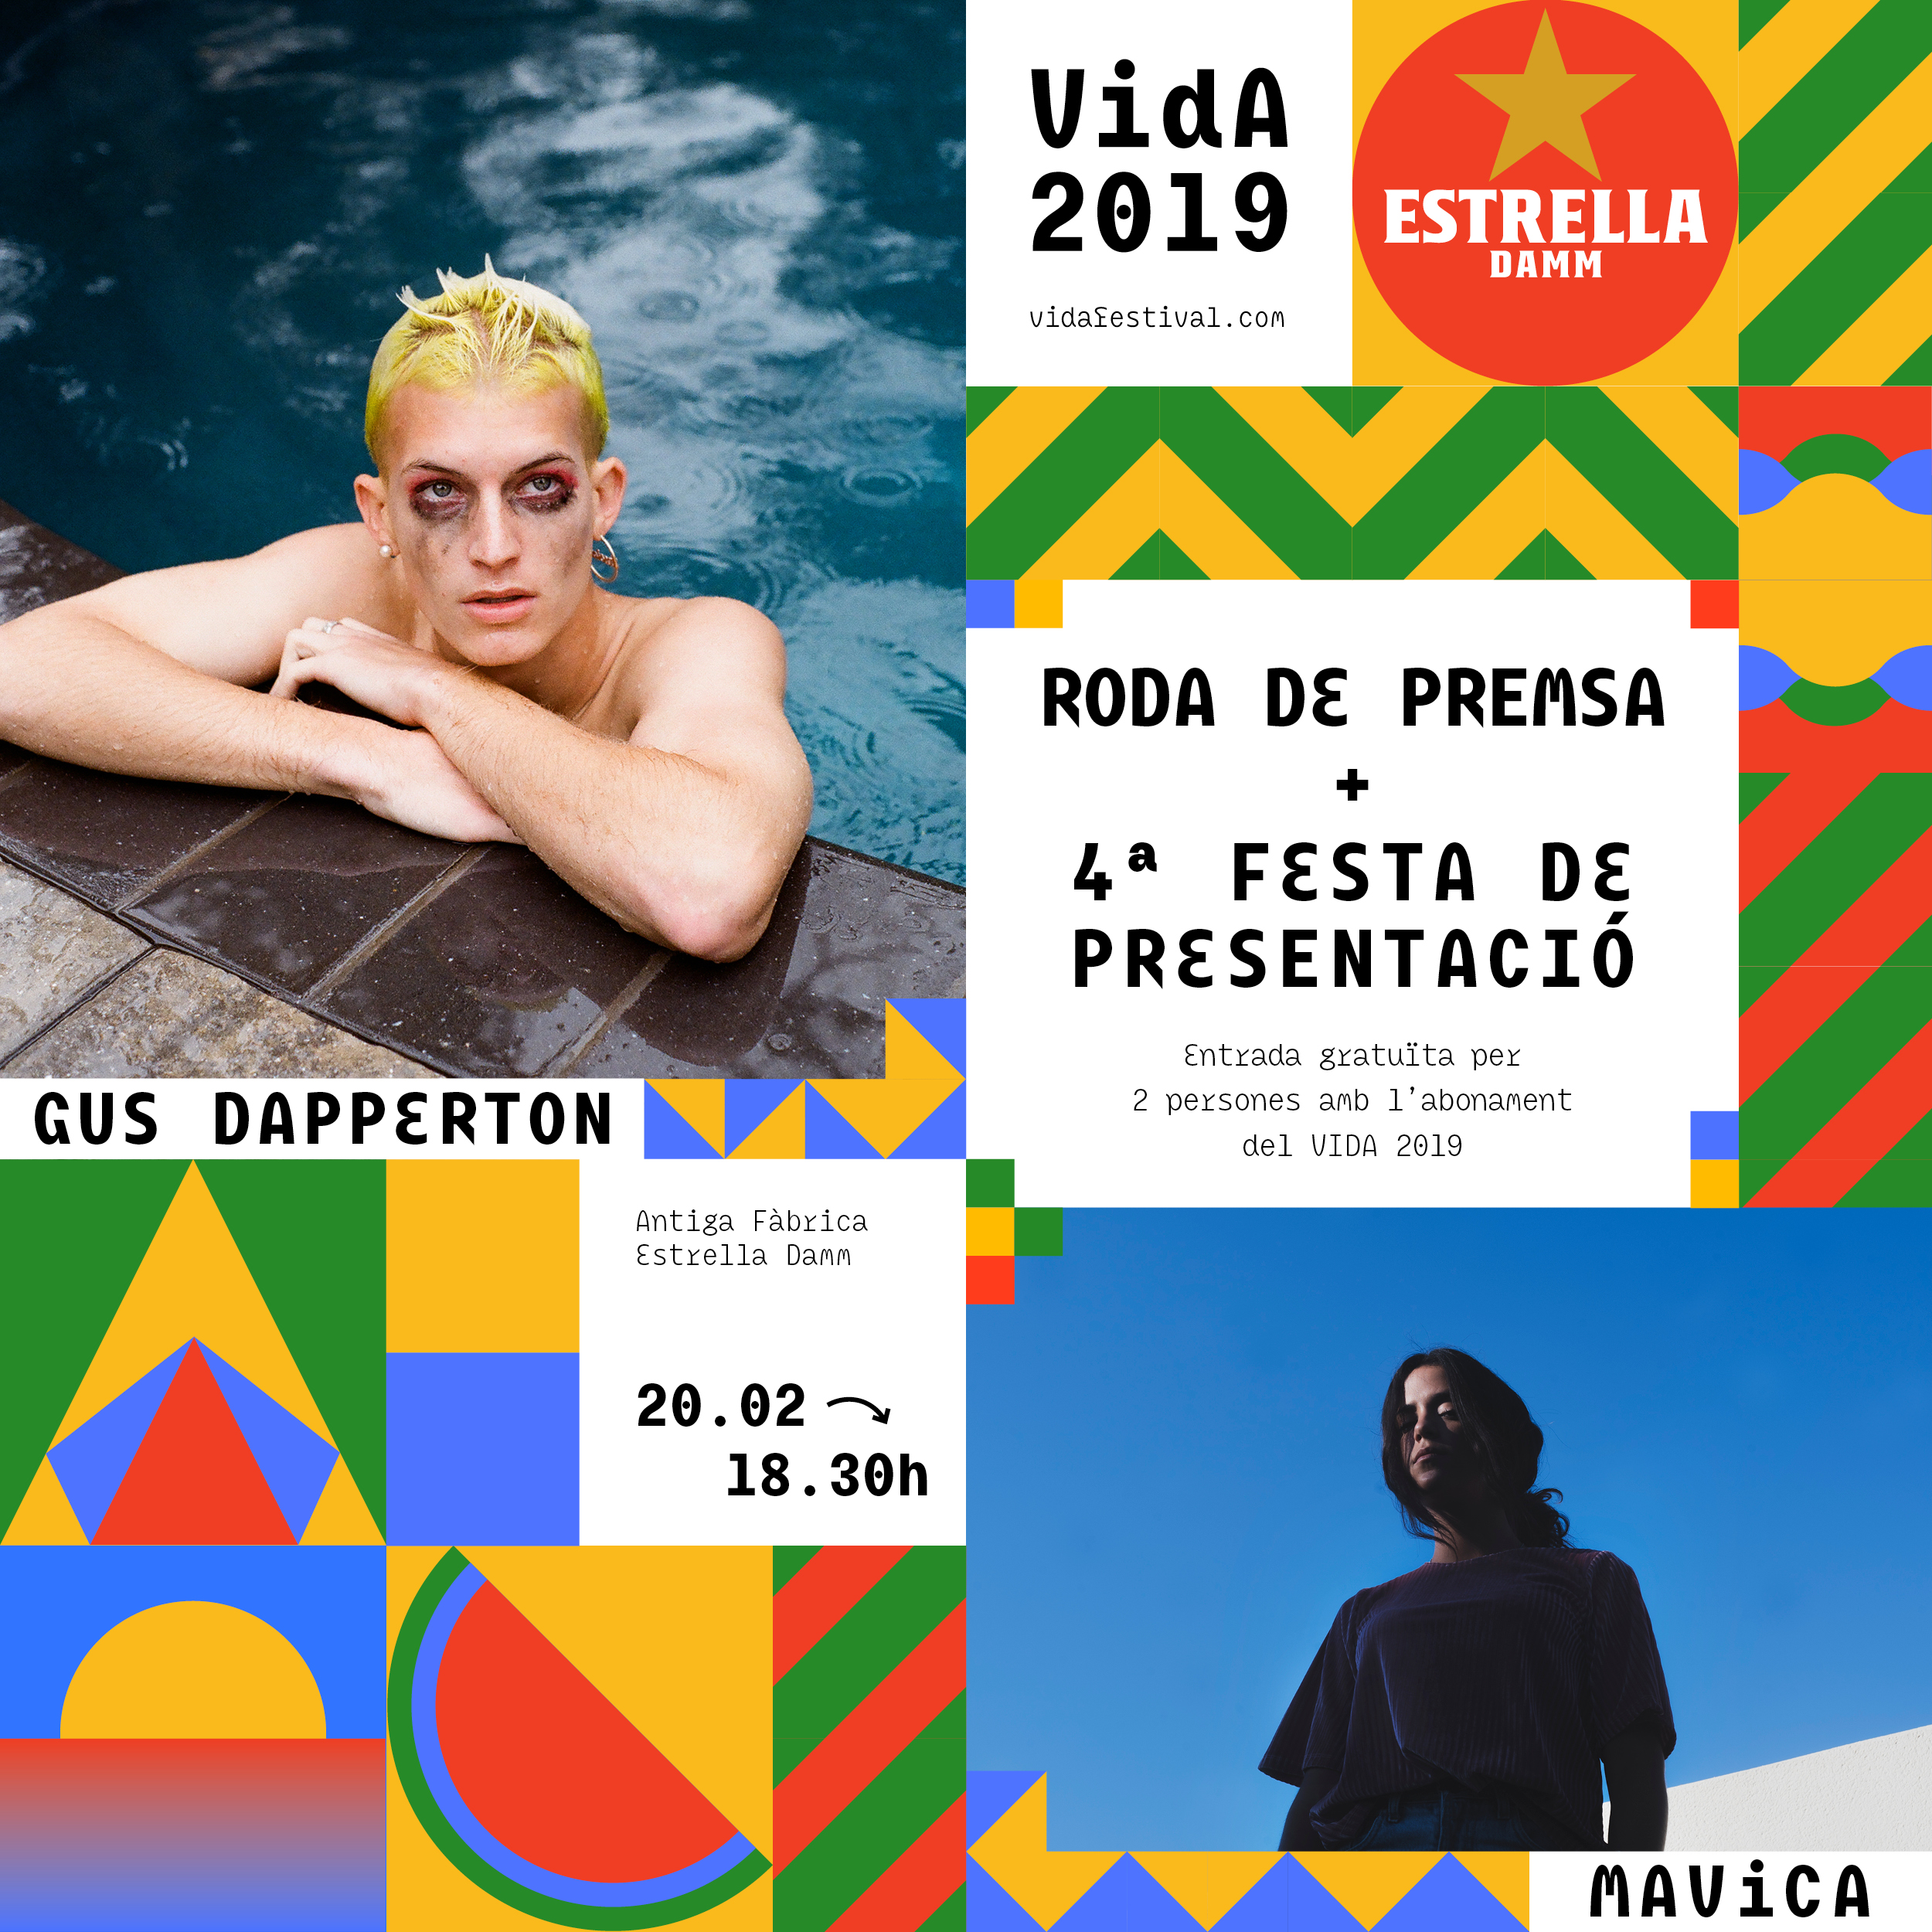 Gus Dapperton + mavica 1x1 final.jpg